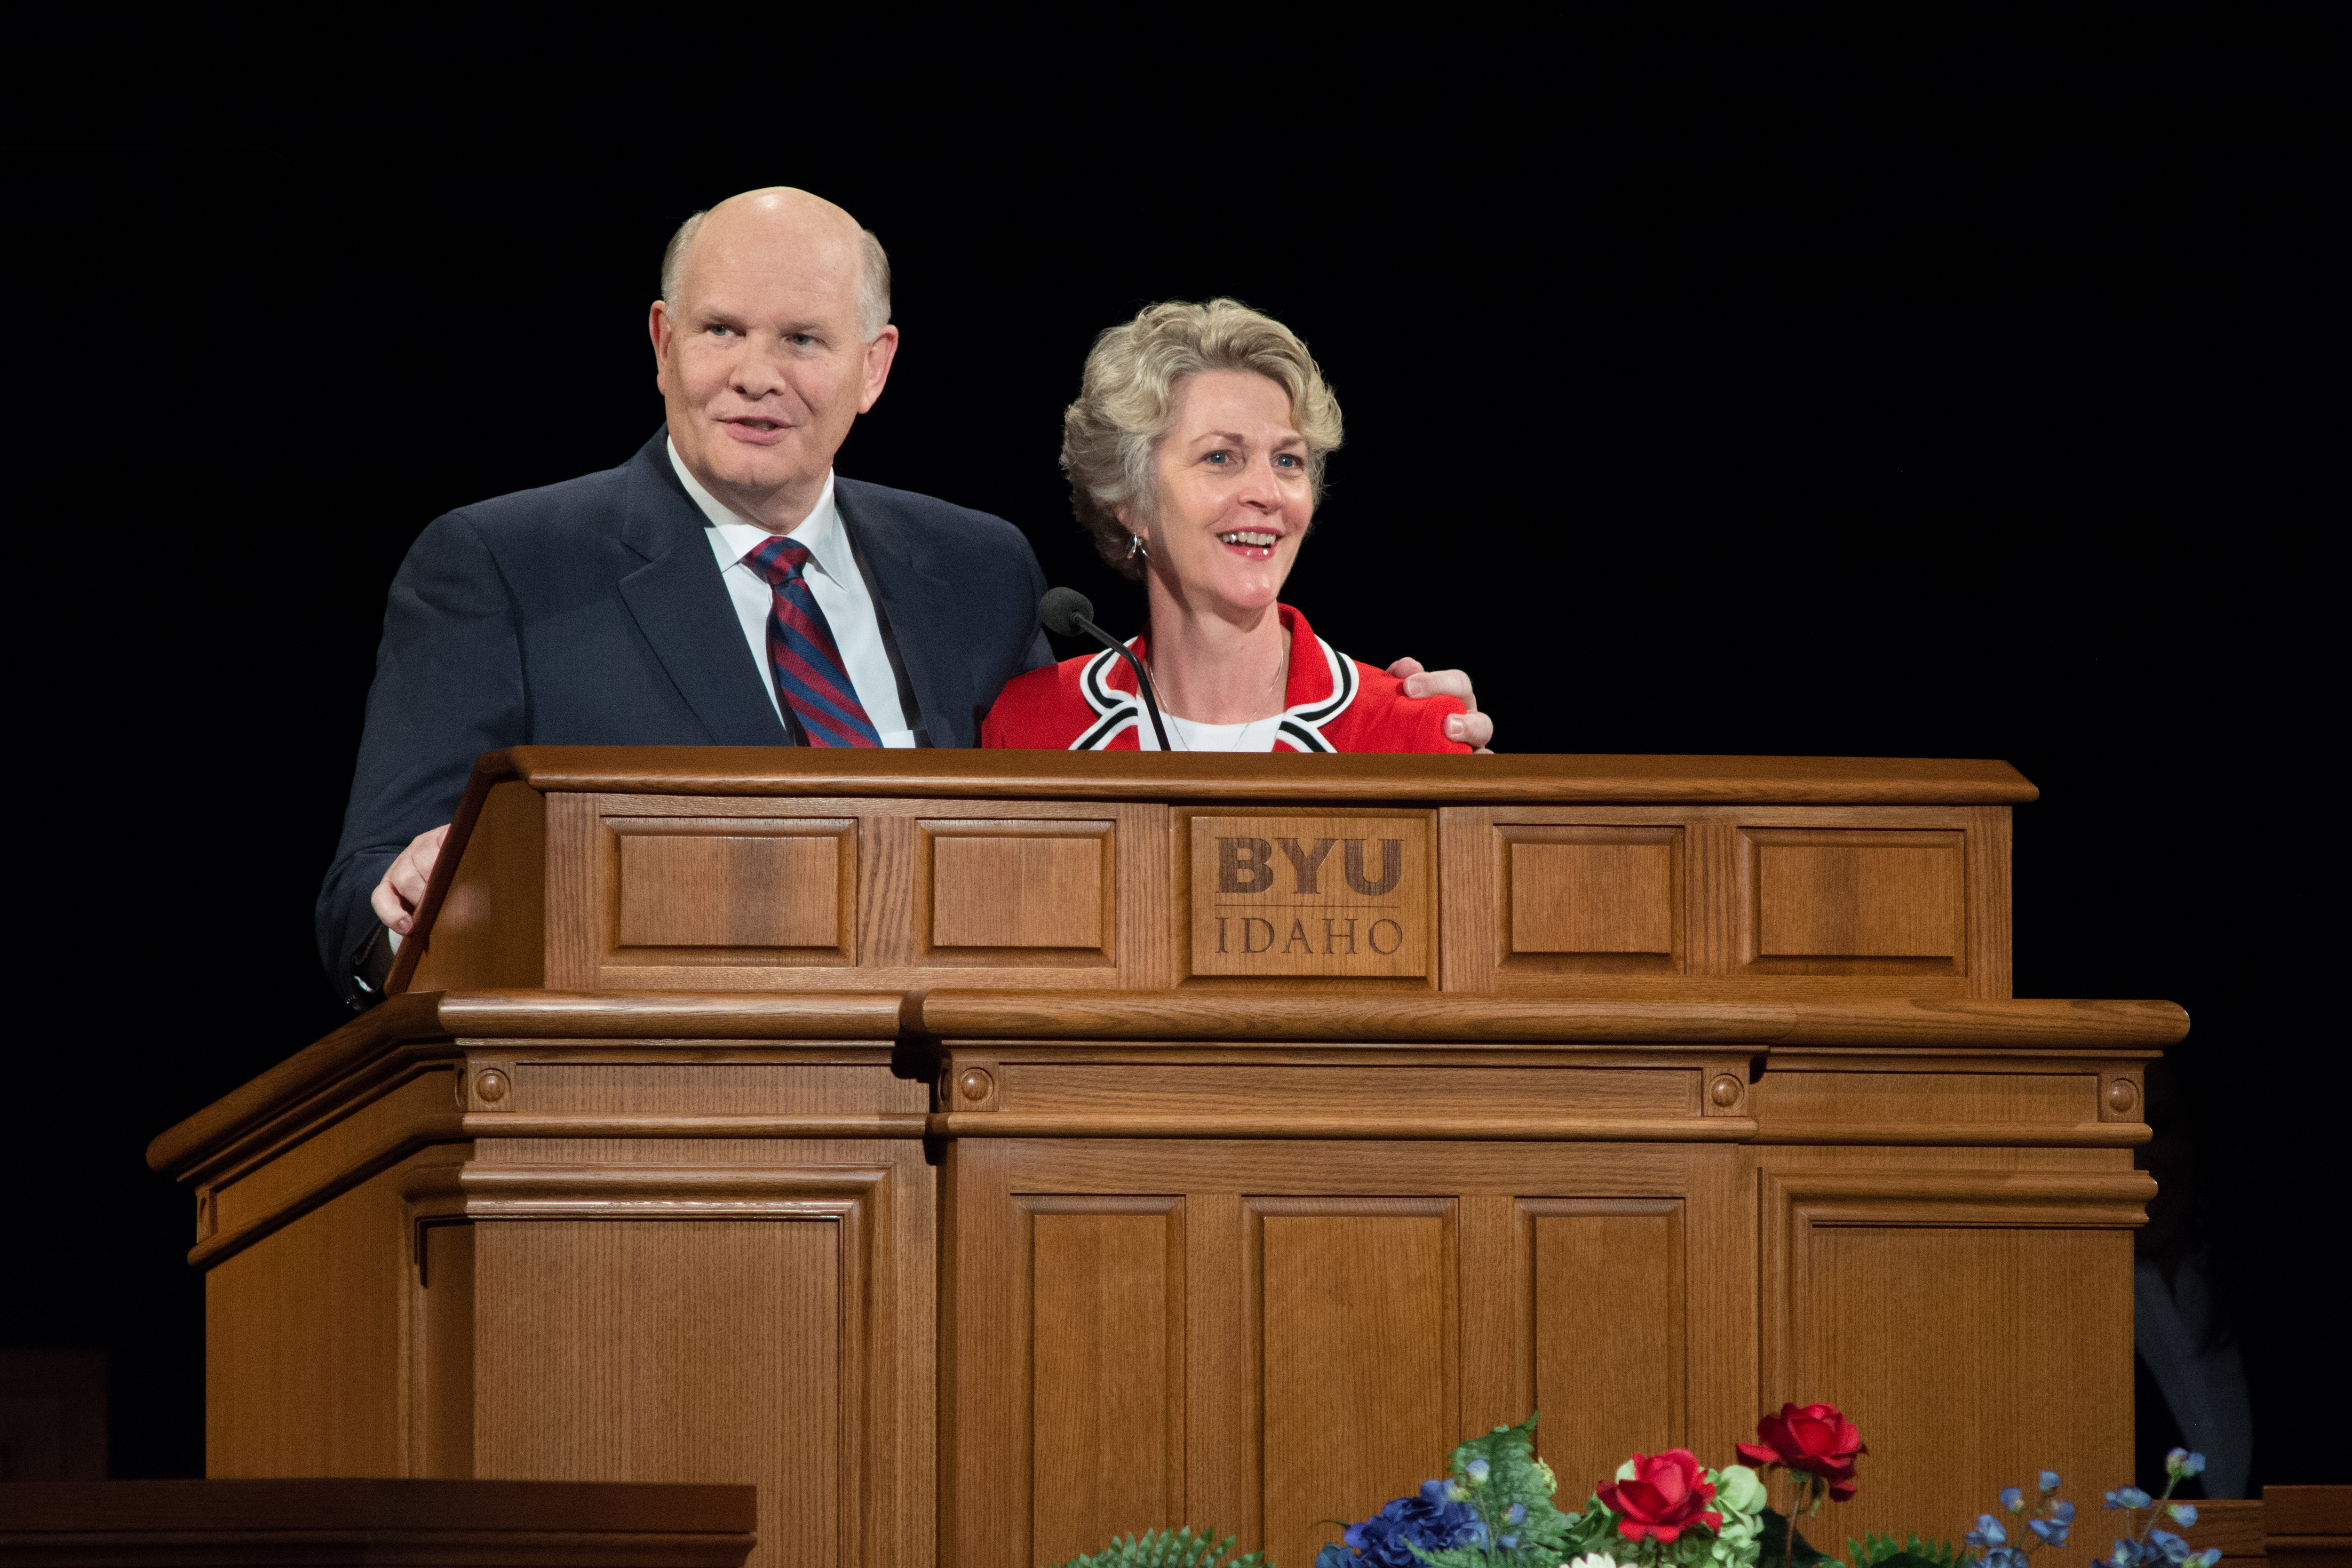 Elder Dale G. Renlund of the Quorum of the Twelve Apostles and his wife, Sister Ruth L. Renlund, stand together and speak at a BYU-Idaho campus devotional on Sept. 26, 2017.